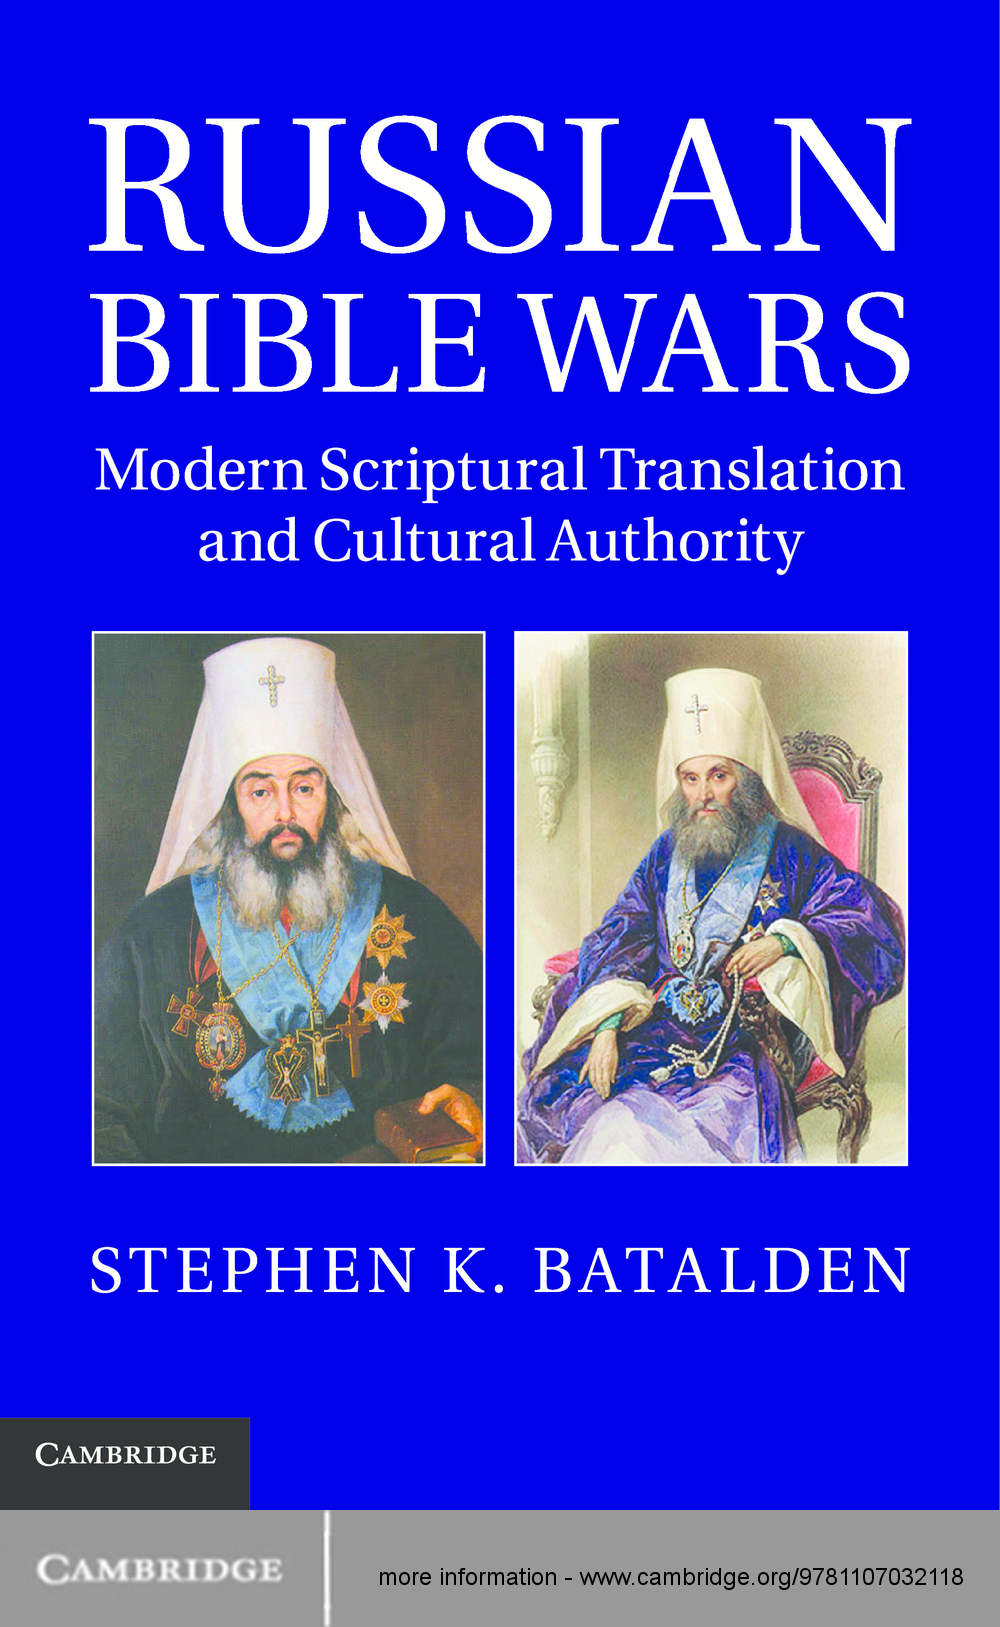 Russian Bible Wars Modern Scriptural Translation and Cultural Authority